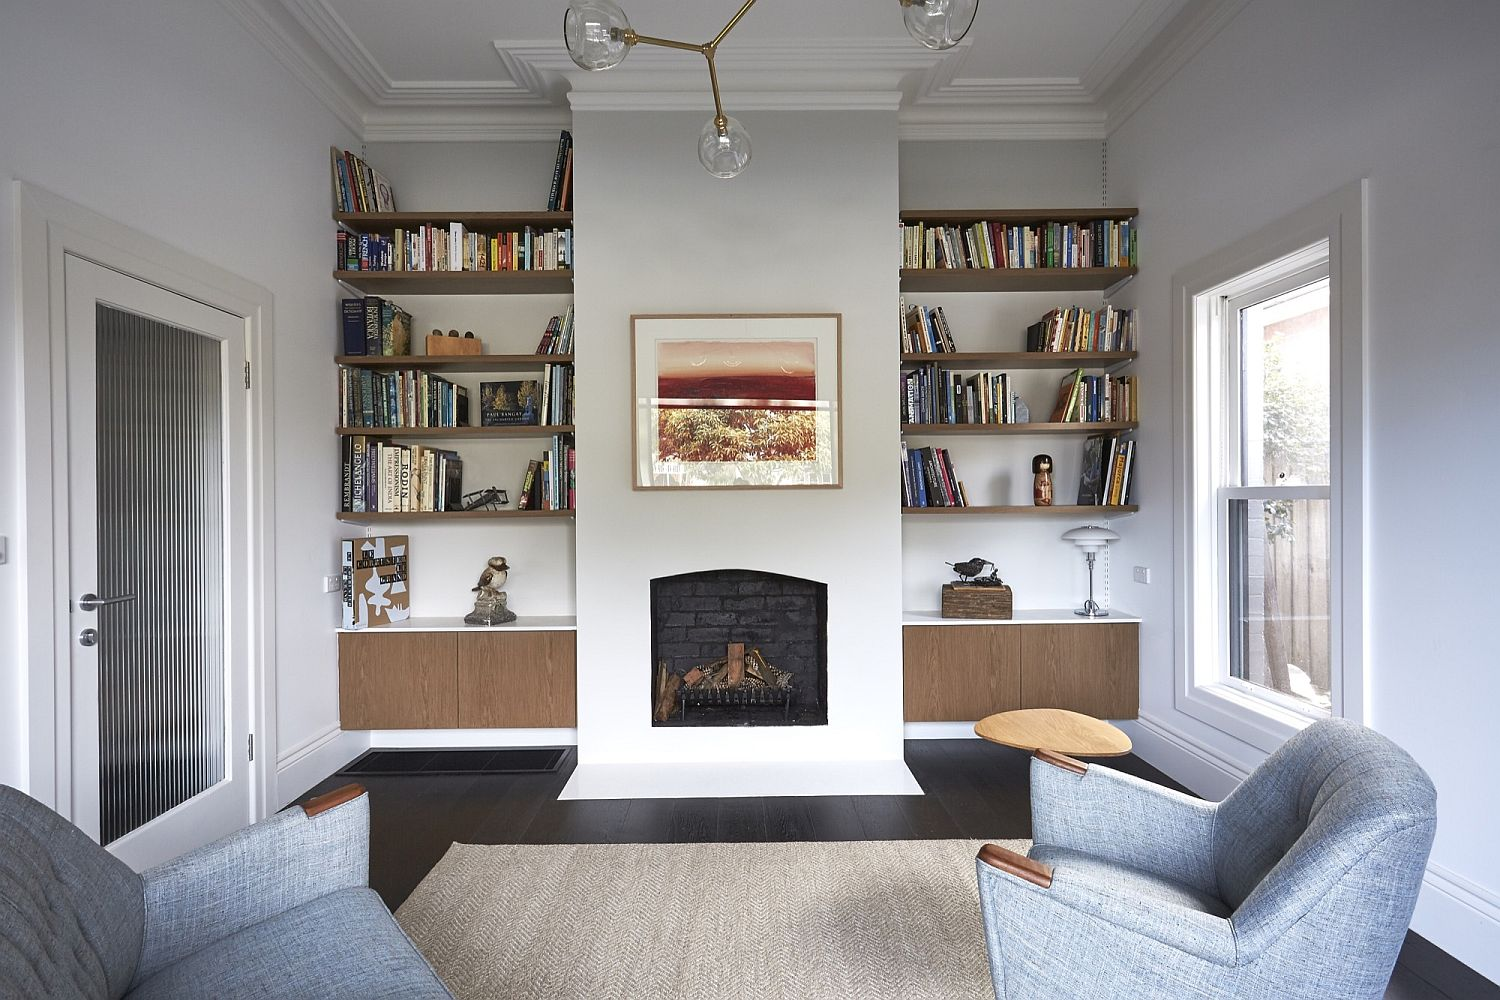 Classic interiors of the home with bookshelf and ample sitting space